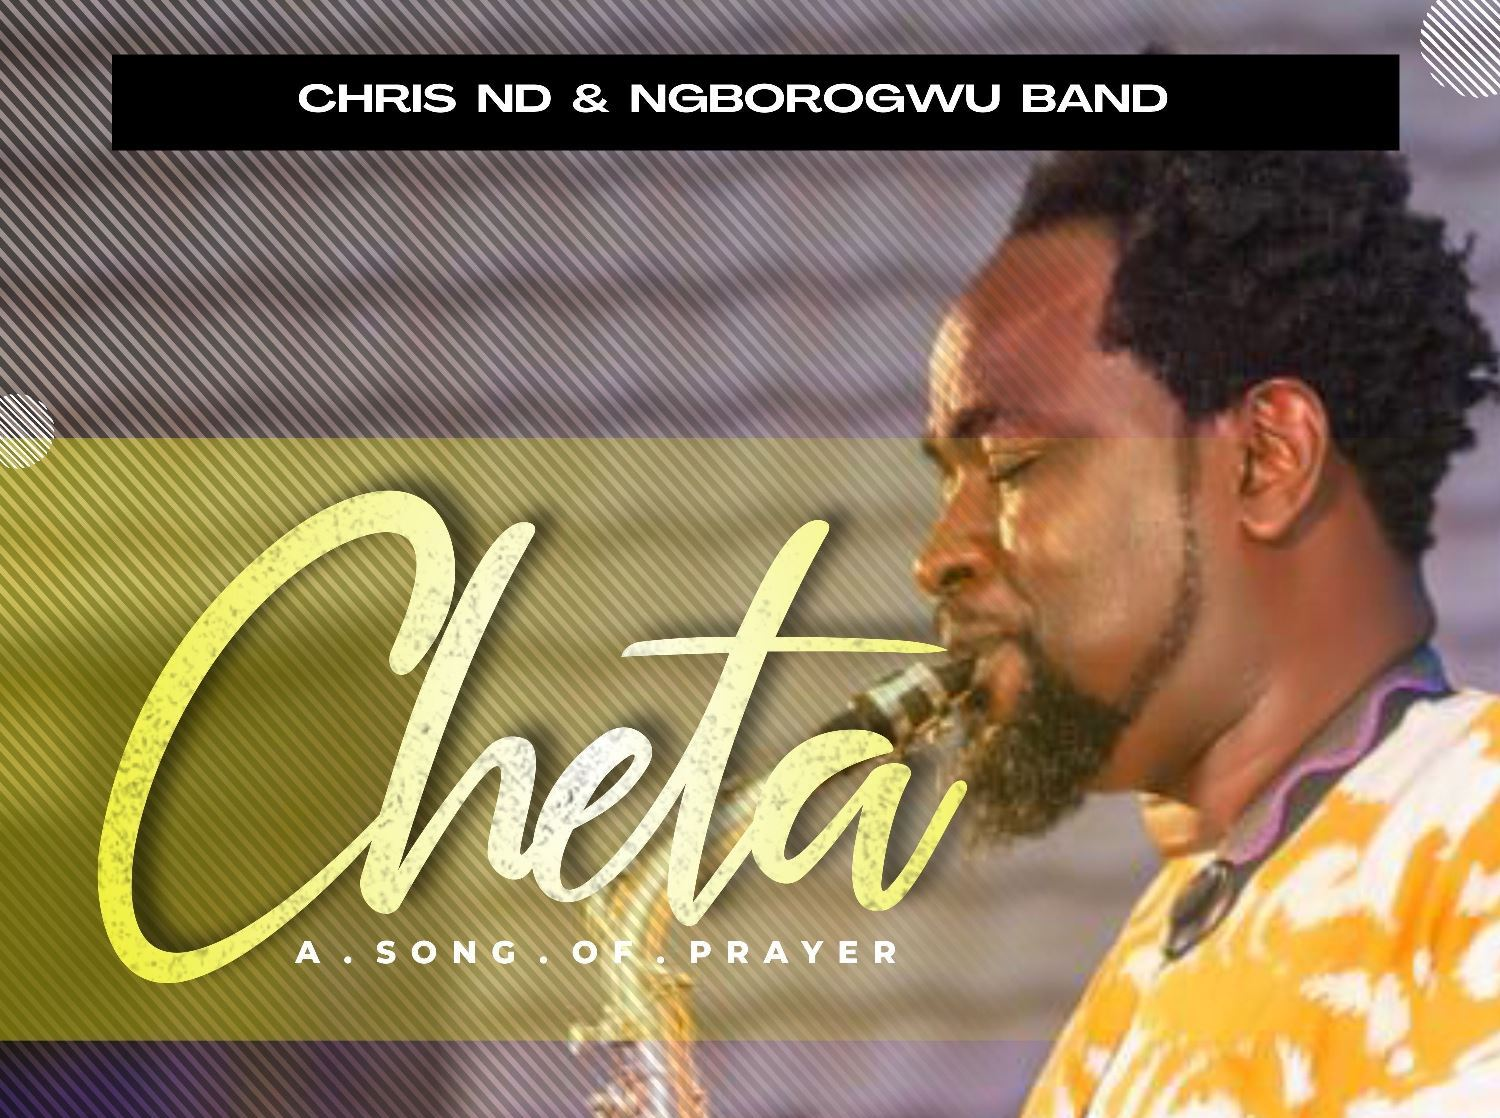 Afrocentric Gospel singer and saxophonist Chris ND drops EP titled CHETA